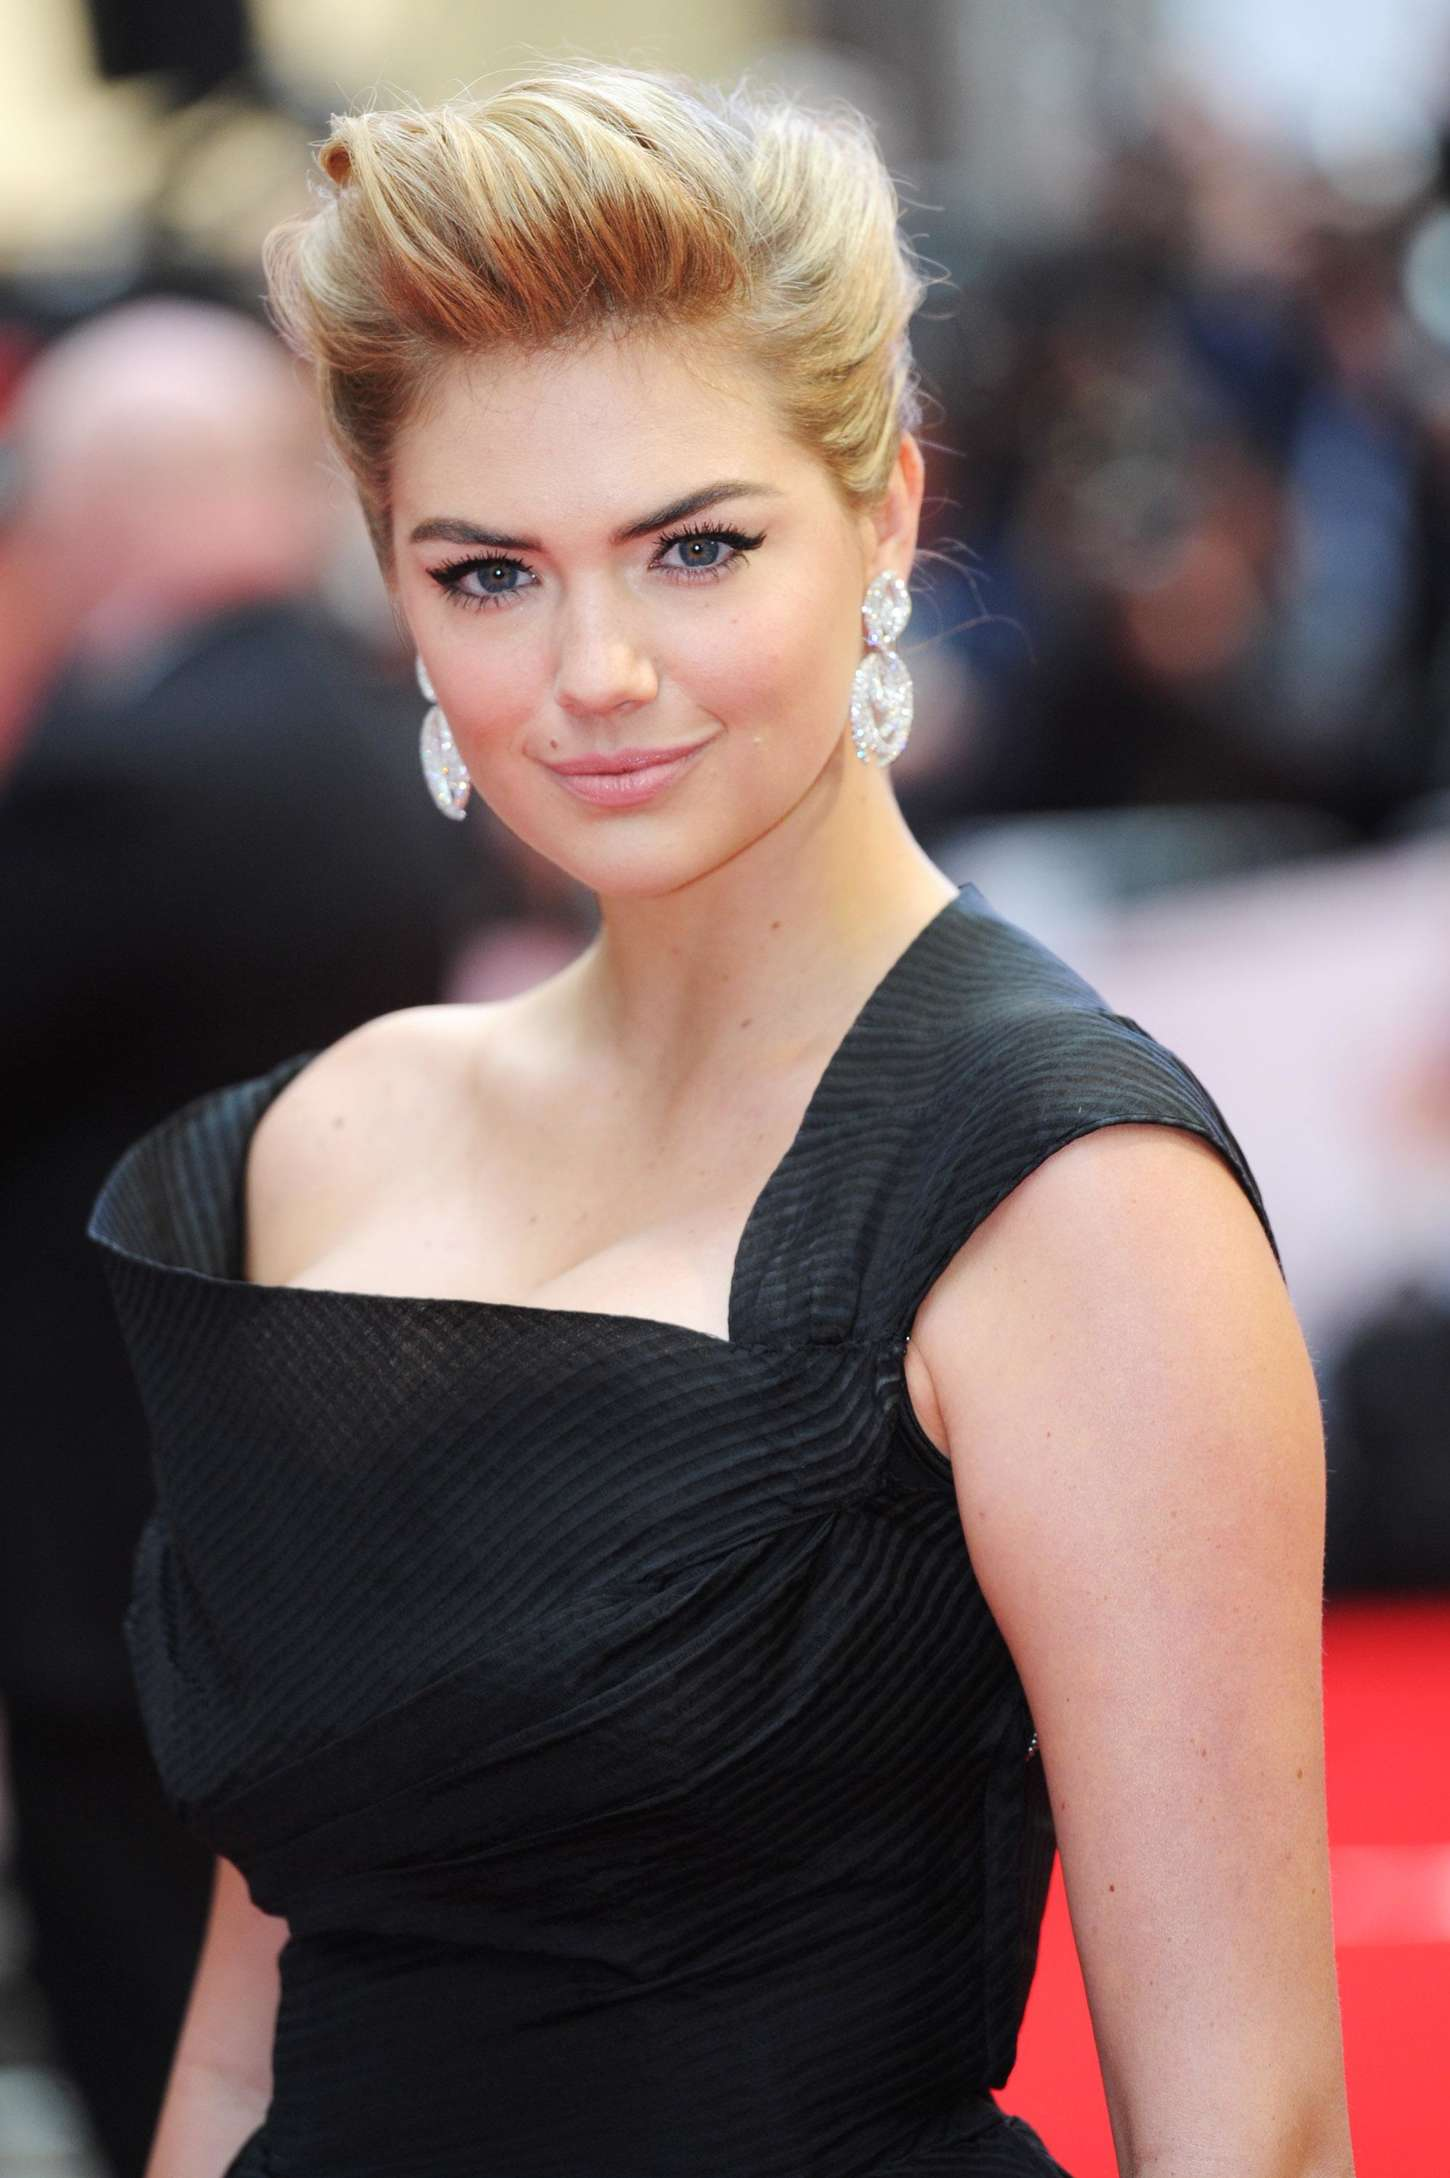 Kate Upton: The Other Woman UK Premiere -07 - GotCeleb Hilary Duff Mean